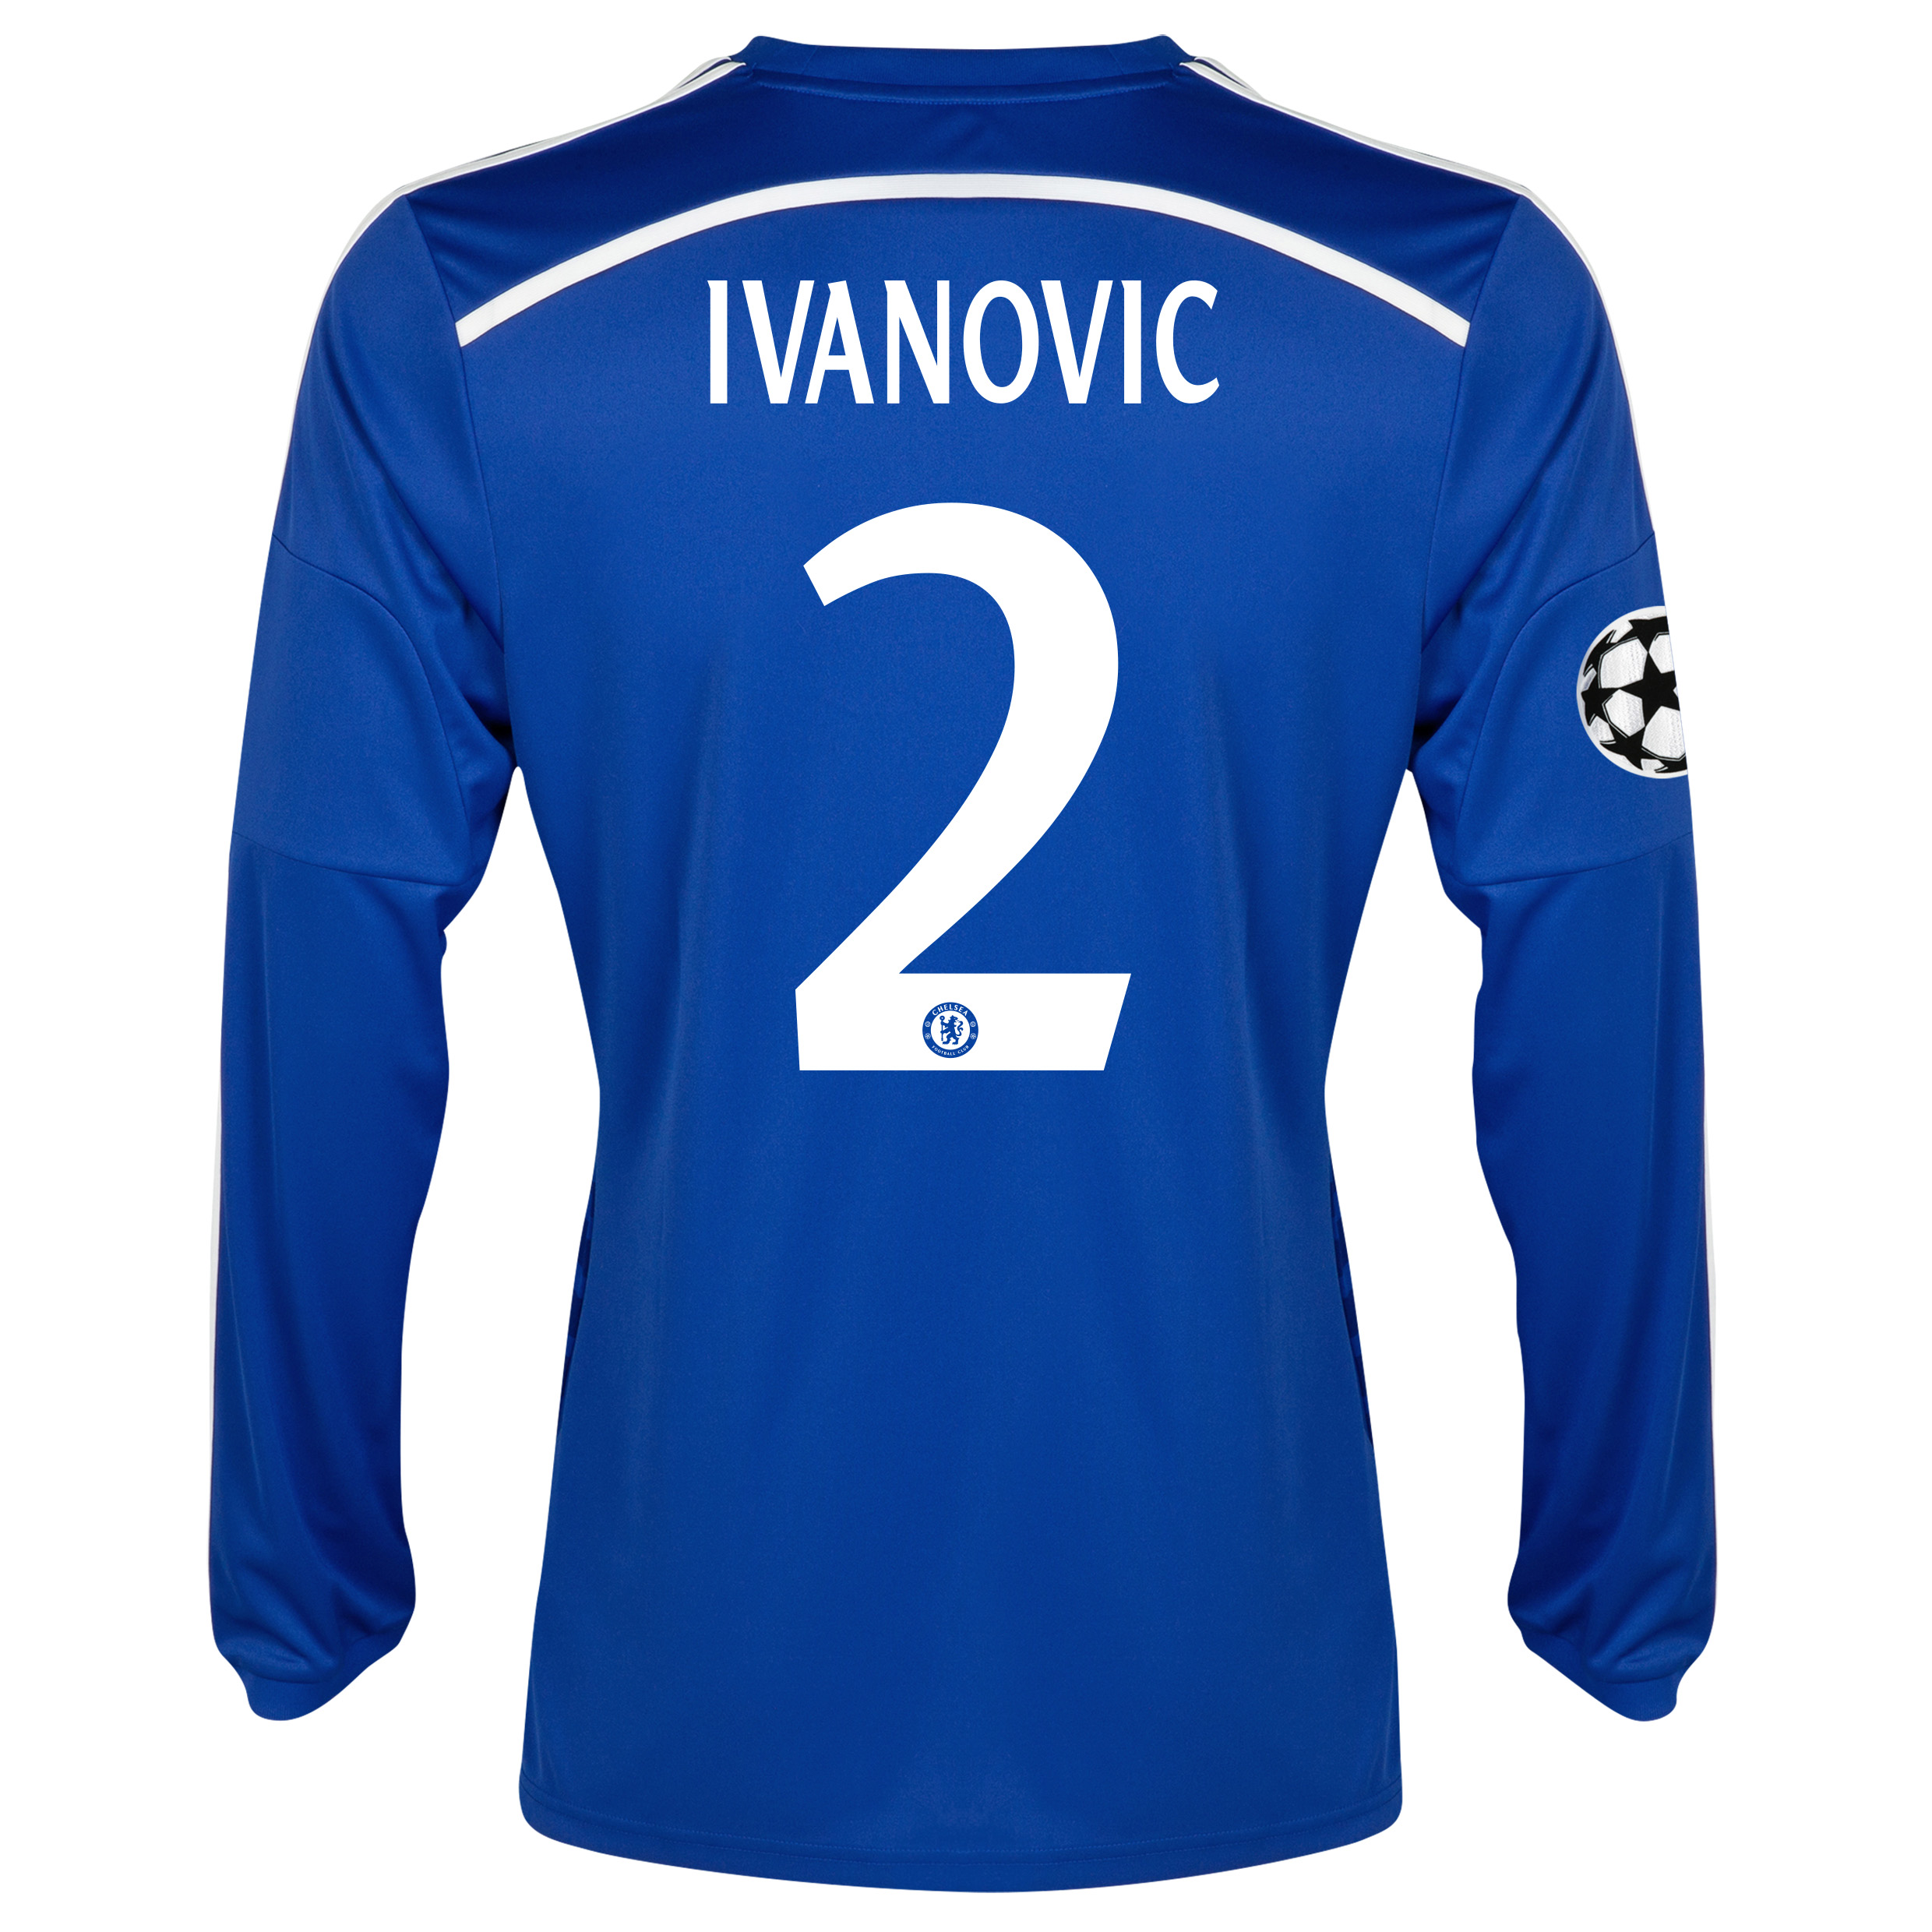 Chelsea UEFA Champions League Home Shirt 2014/15 - Long Sleeve - Kids Blue with Ivanovic 2 printing